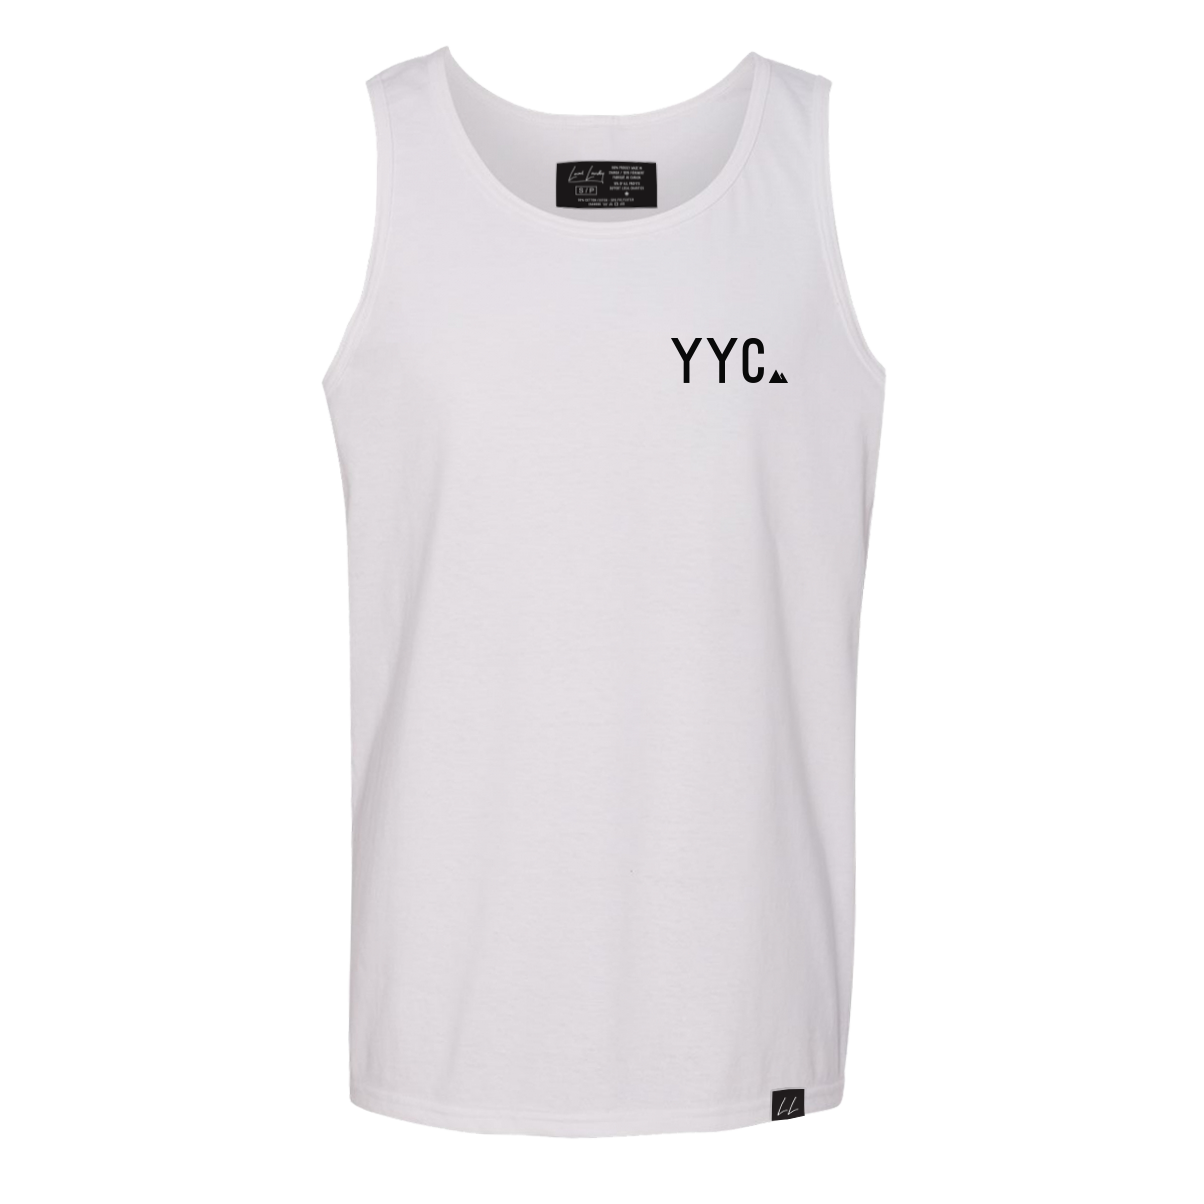 Made in Canada YYC Tank - Unisex - White